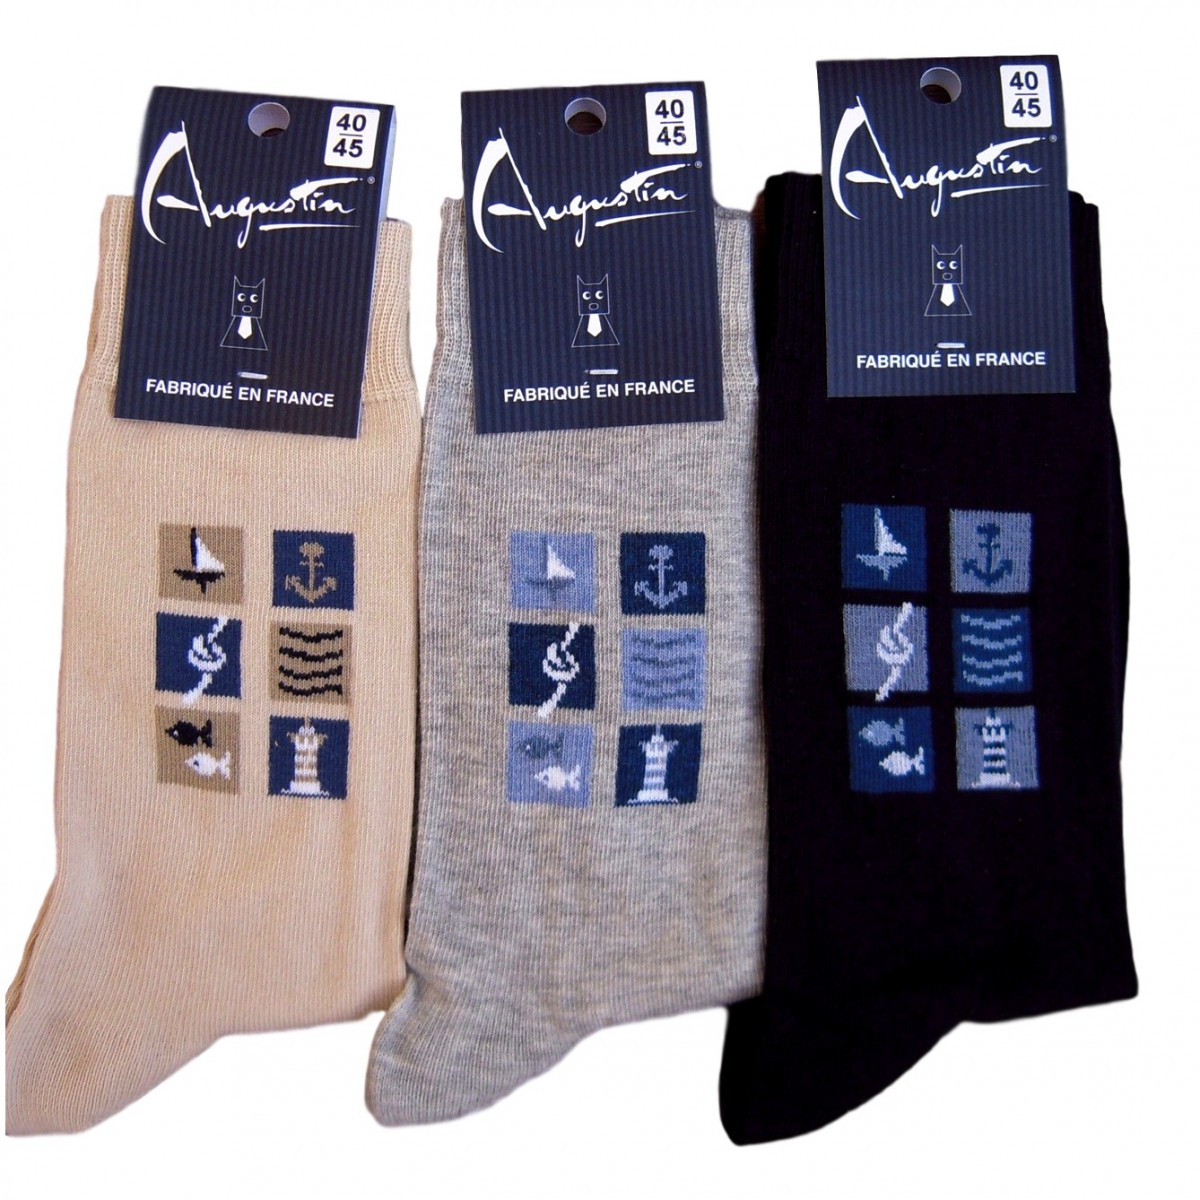 Socks nautical designs